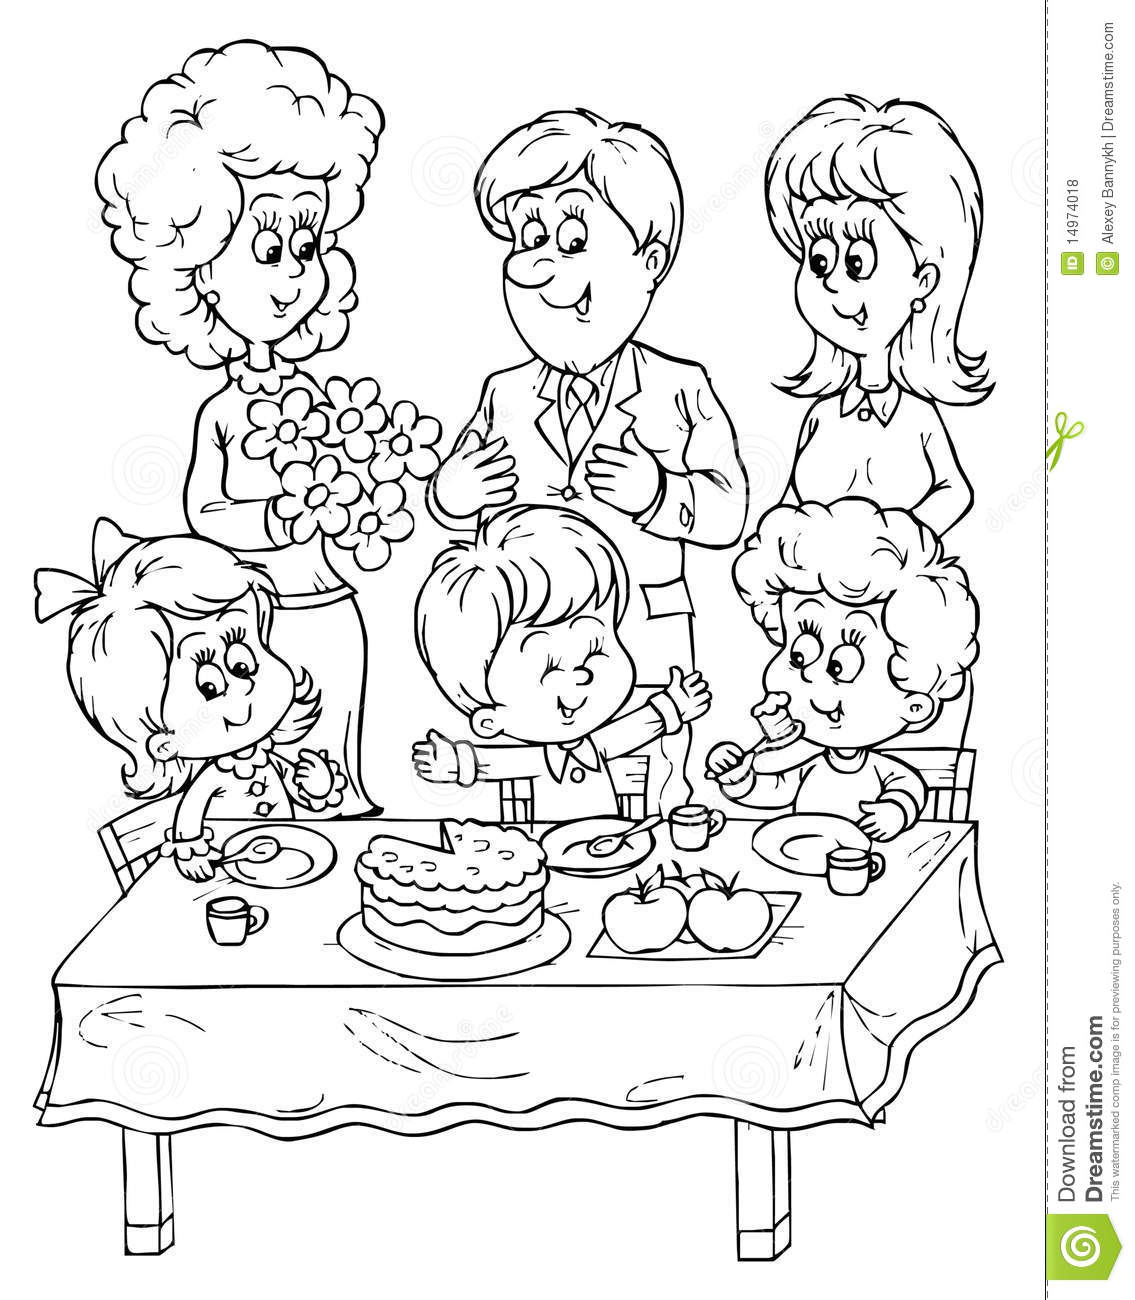 drawing of birthday scene ; drawing-of-birthday-scene-birthday-decorations-to-draw-image-inspiration-of-cake-and